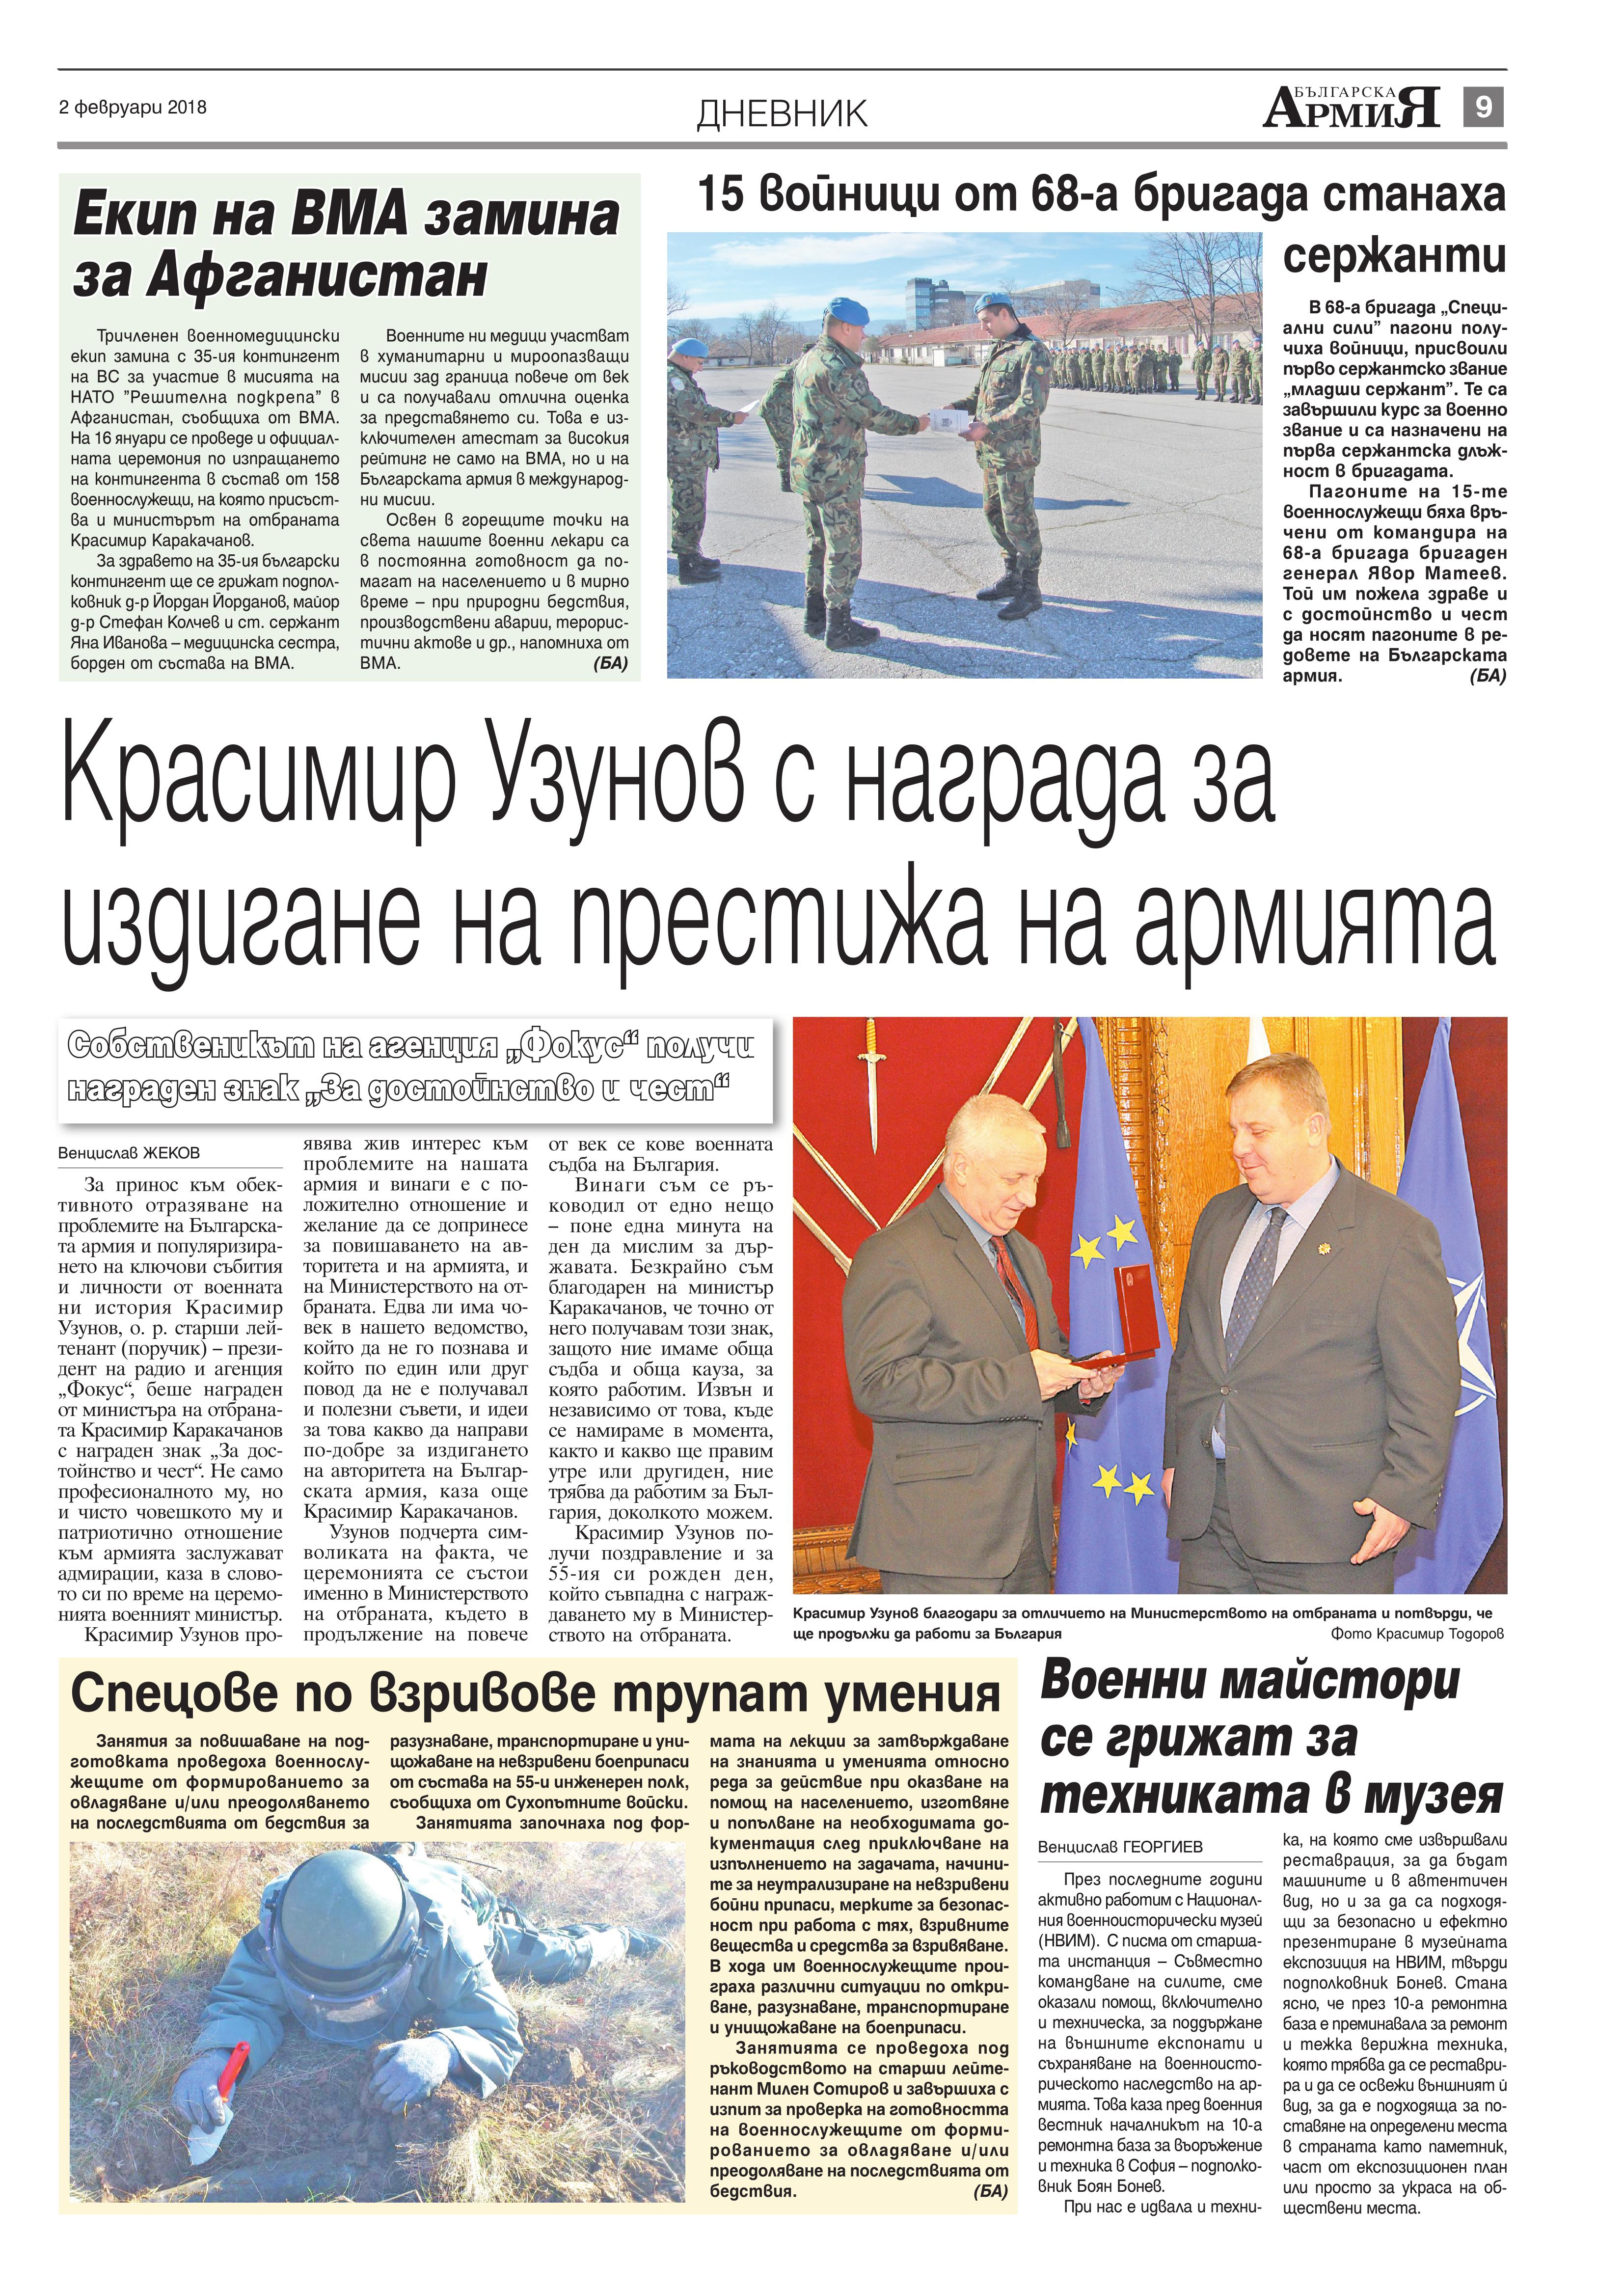 https://armymedia.bg/wp-content/uploads/2015/06/09.page1_-36.jpg